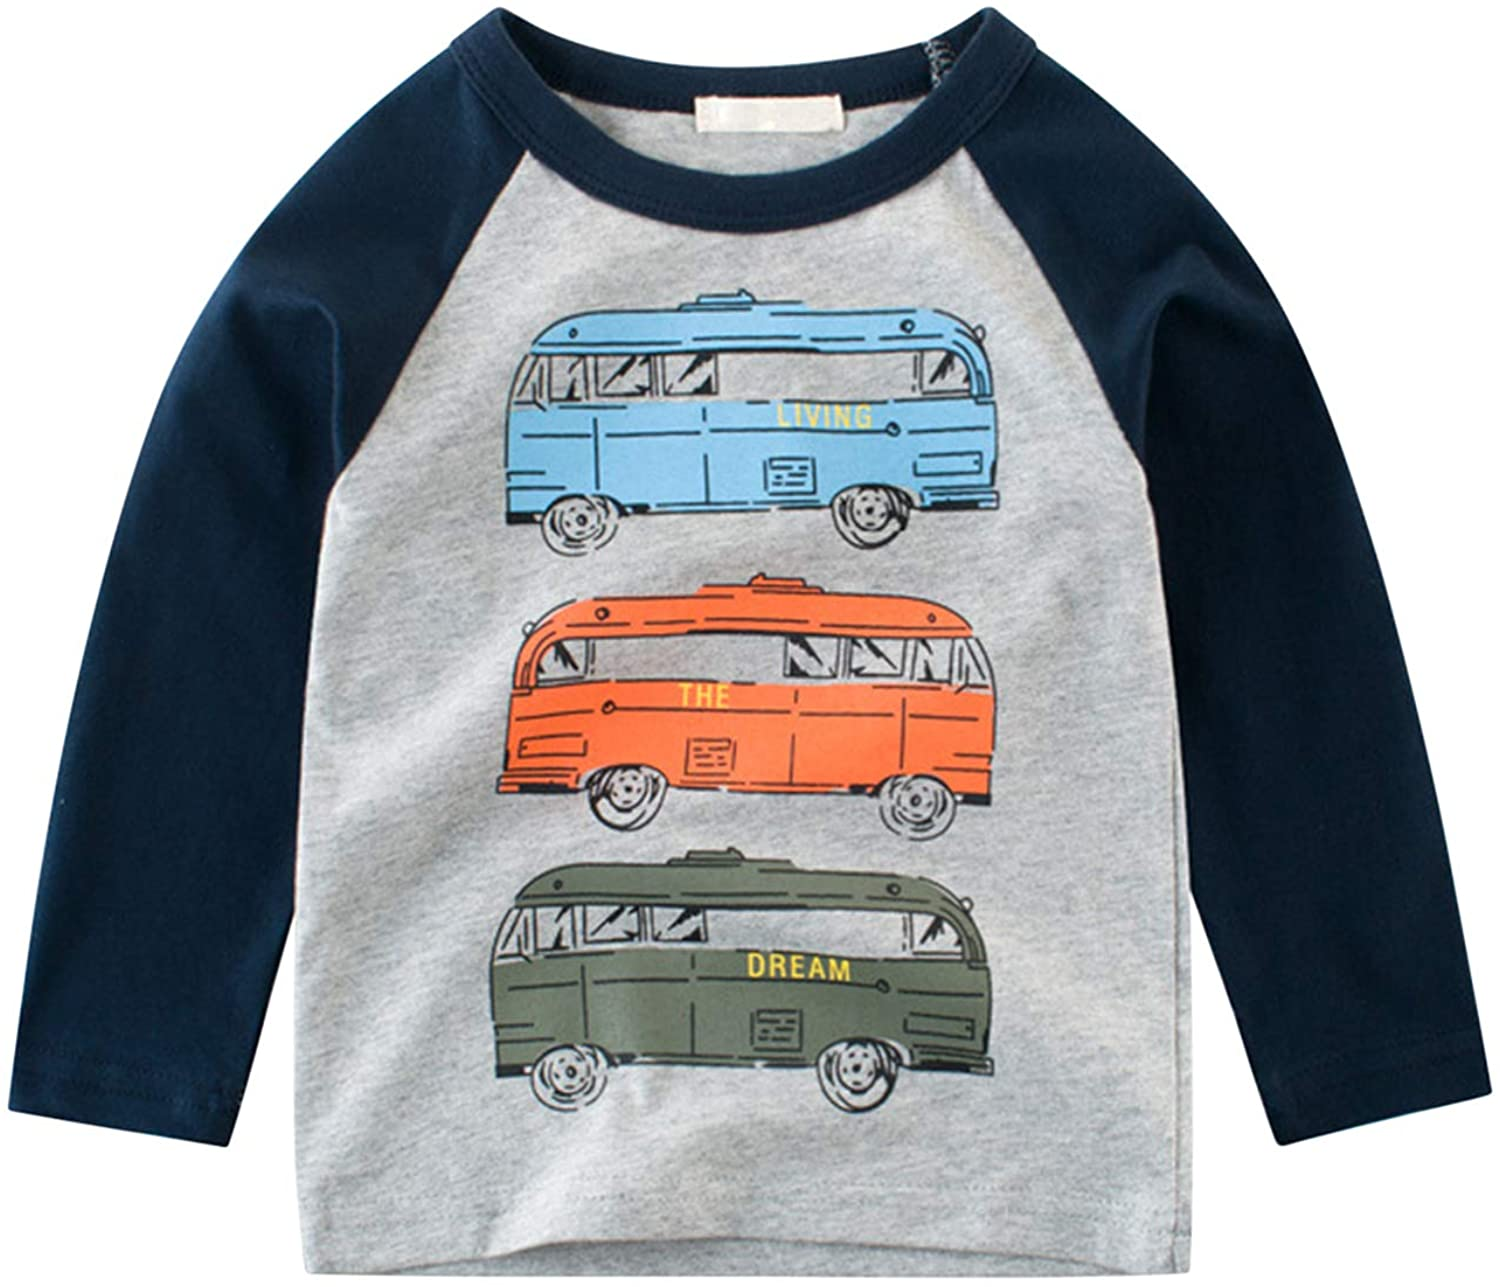 Baby Boys Long Sleeve Blouse Shirts Cute Excavator Print Graphic Pullover Tops